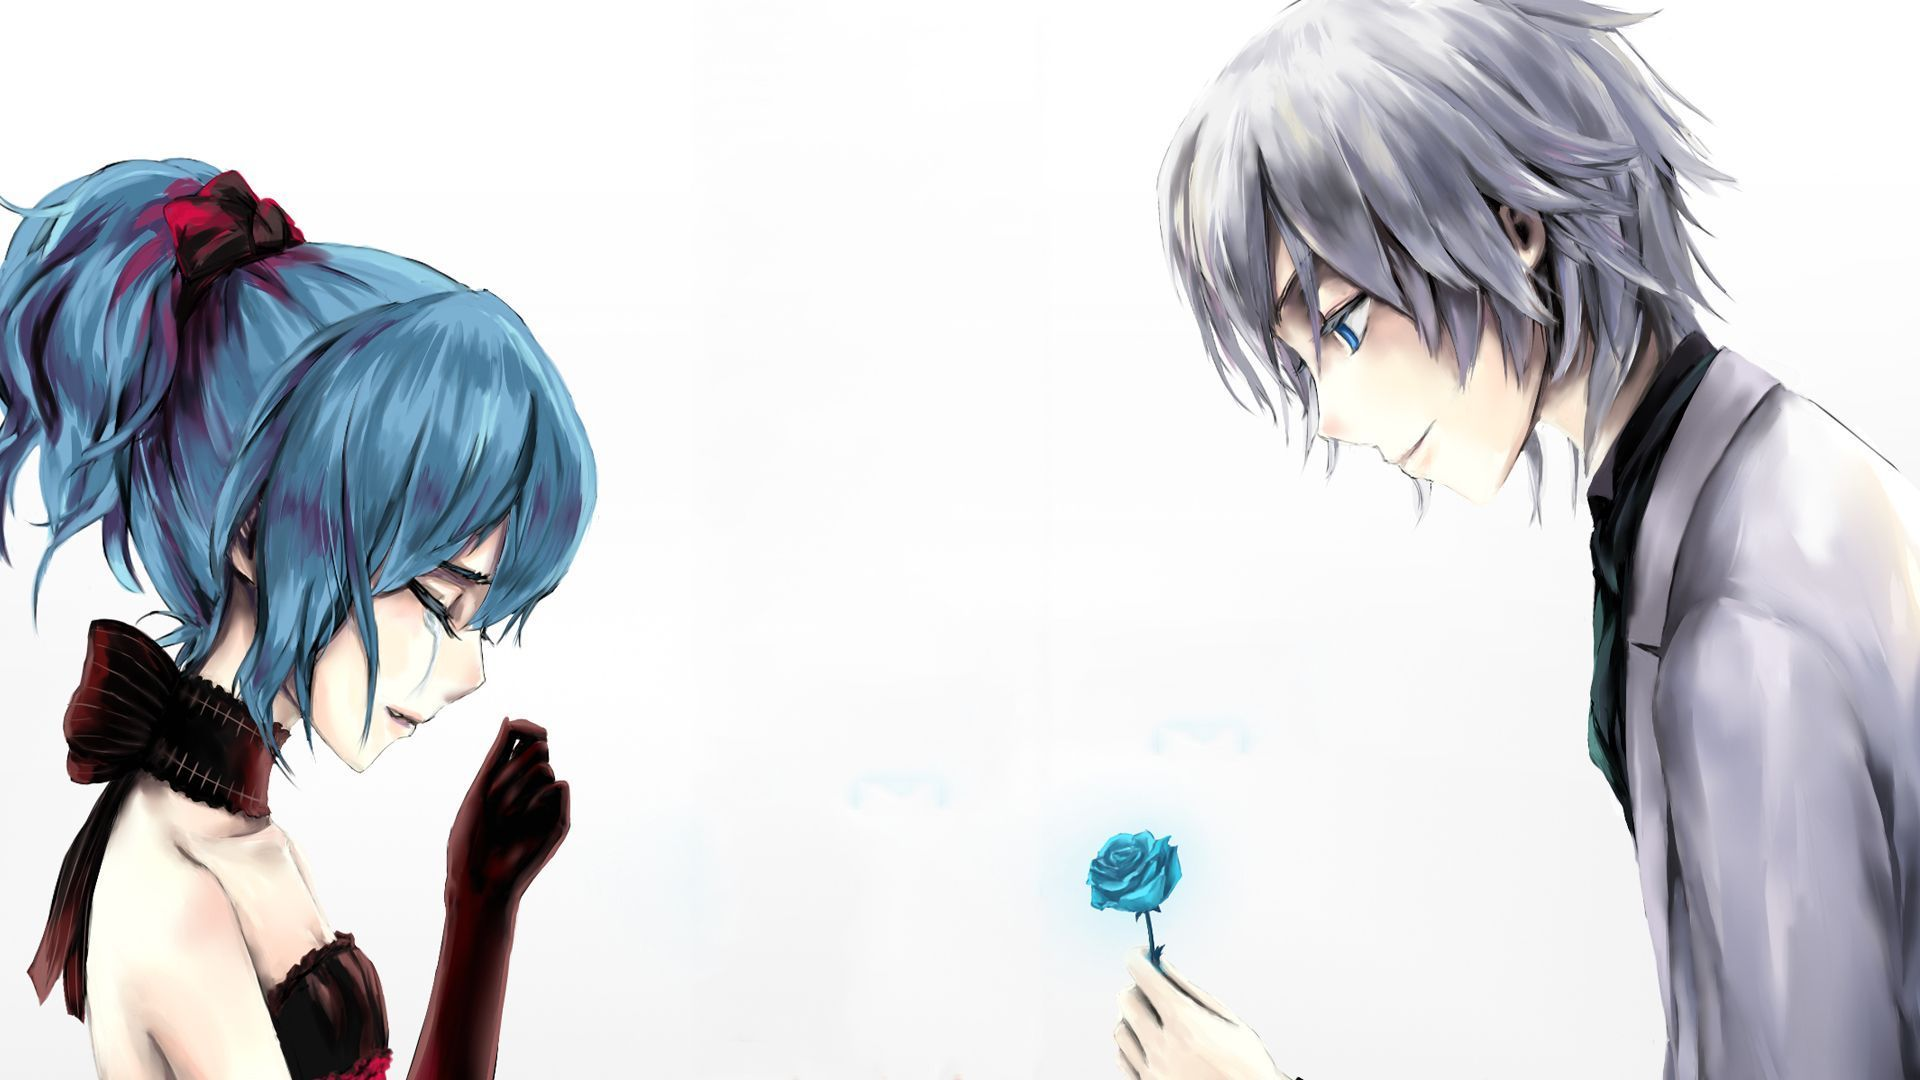 Anime Boy And Girl free download anime love couple boy giving rose to cry girl